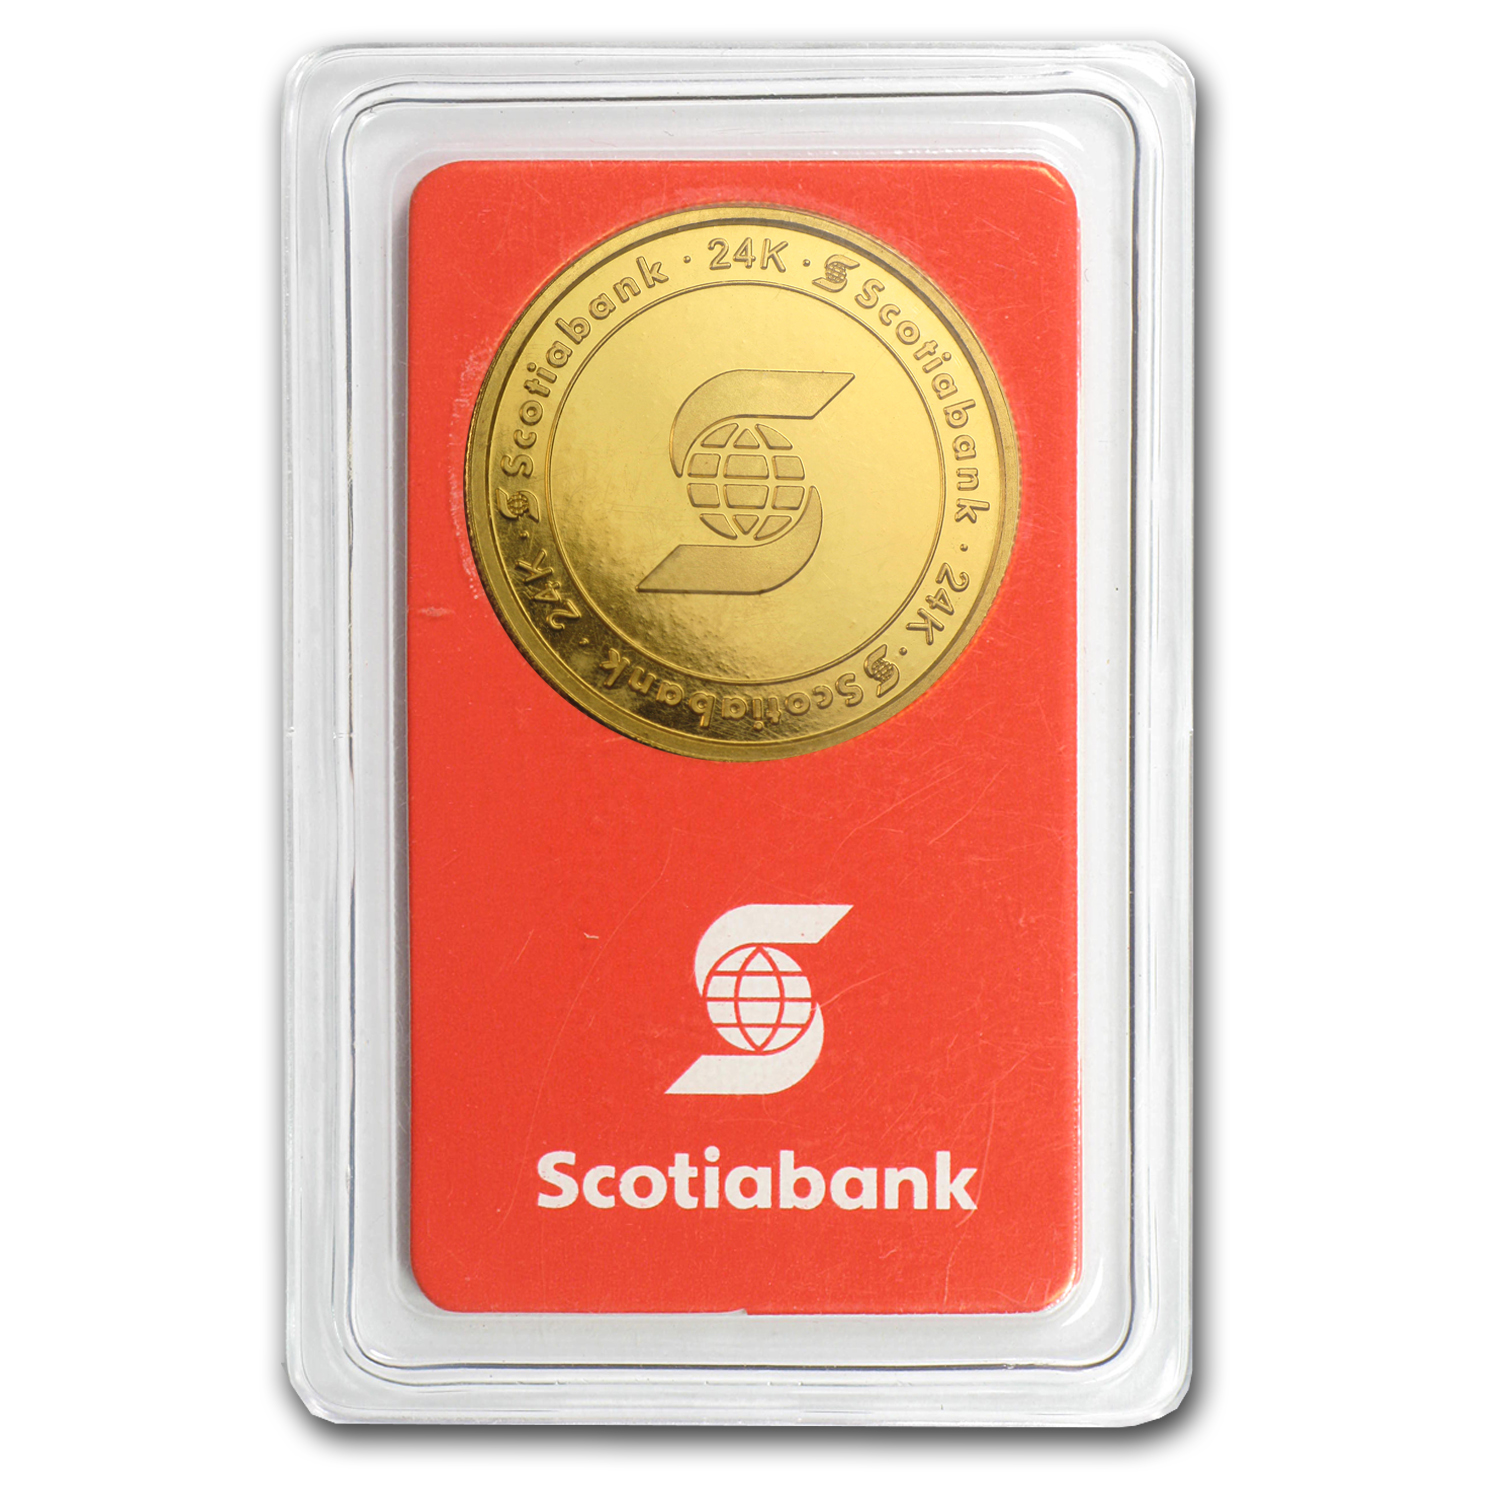 1/2 oz Gold Round - Scotiabank